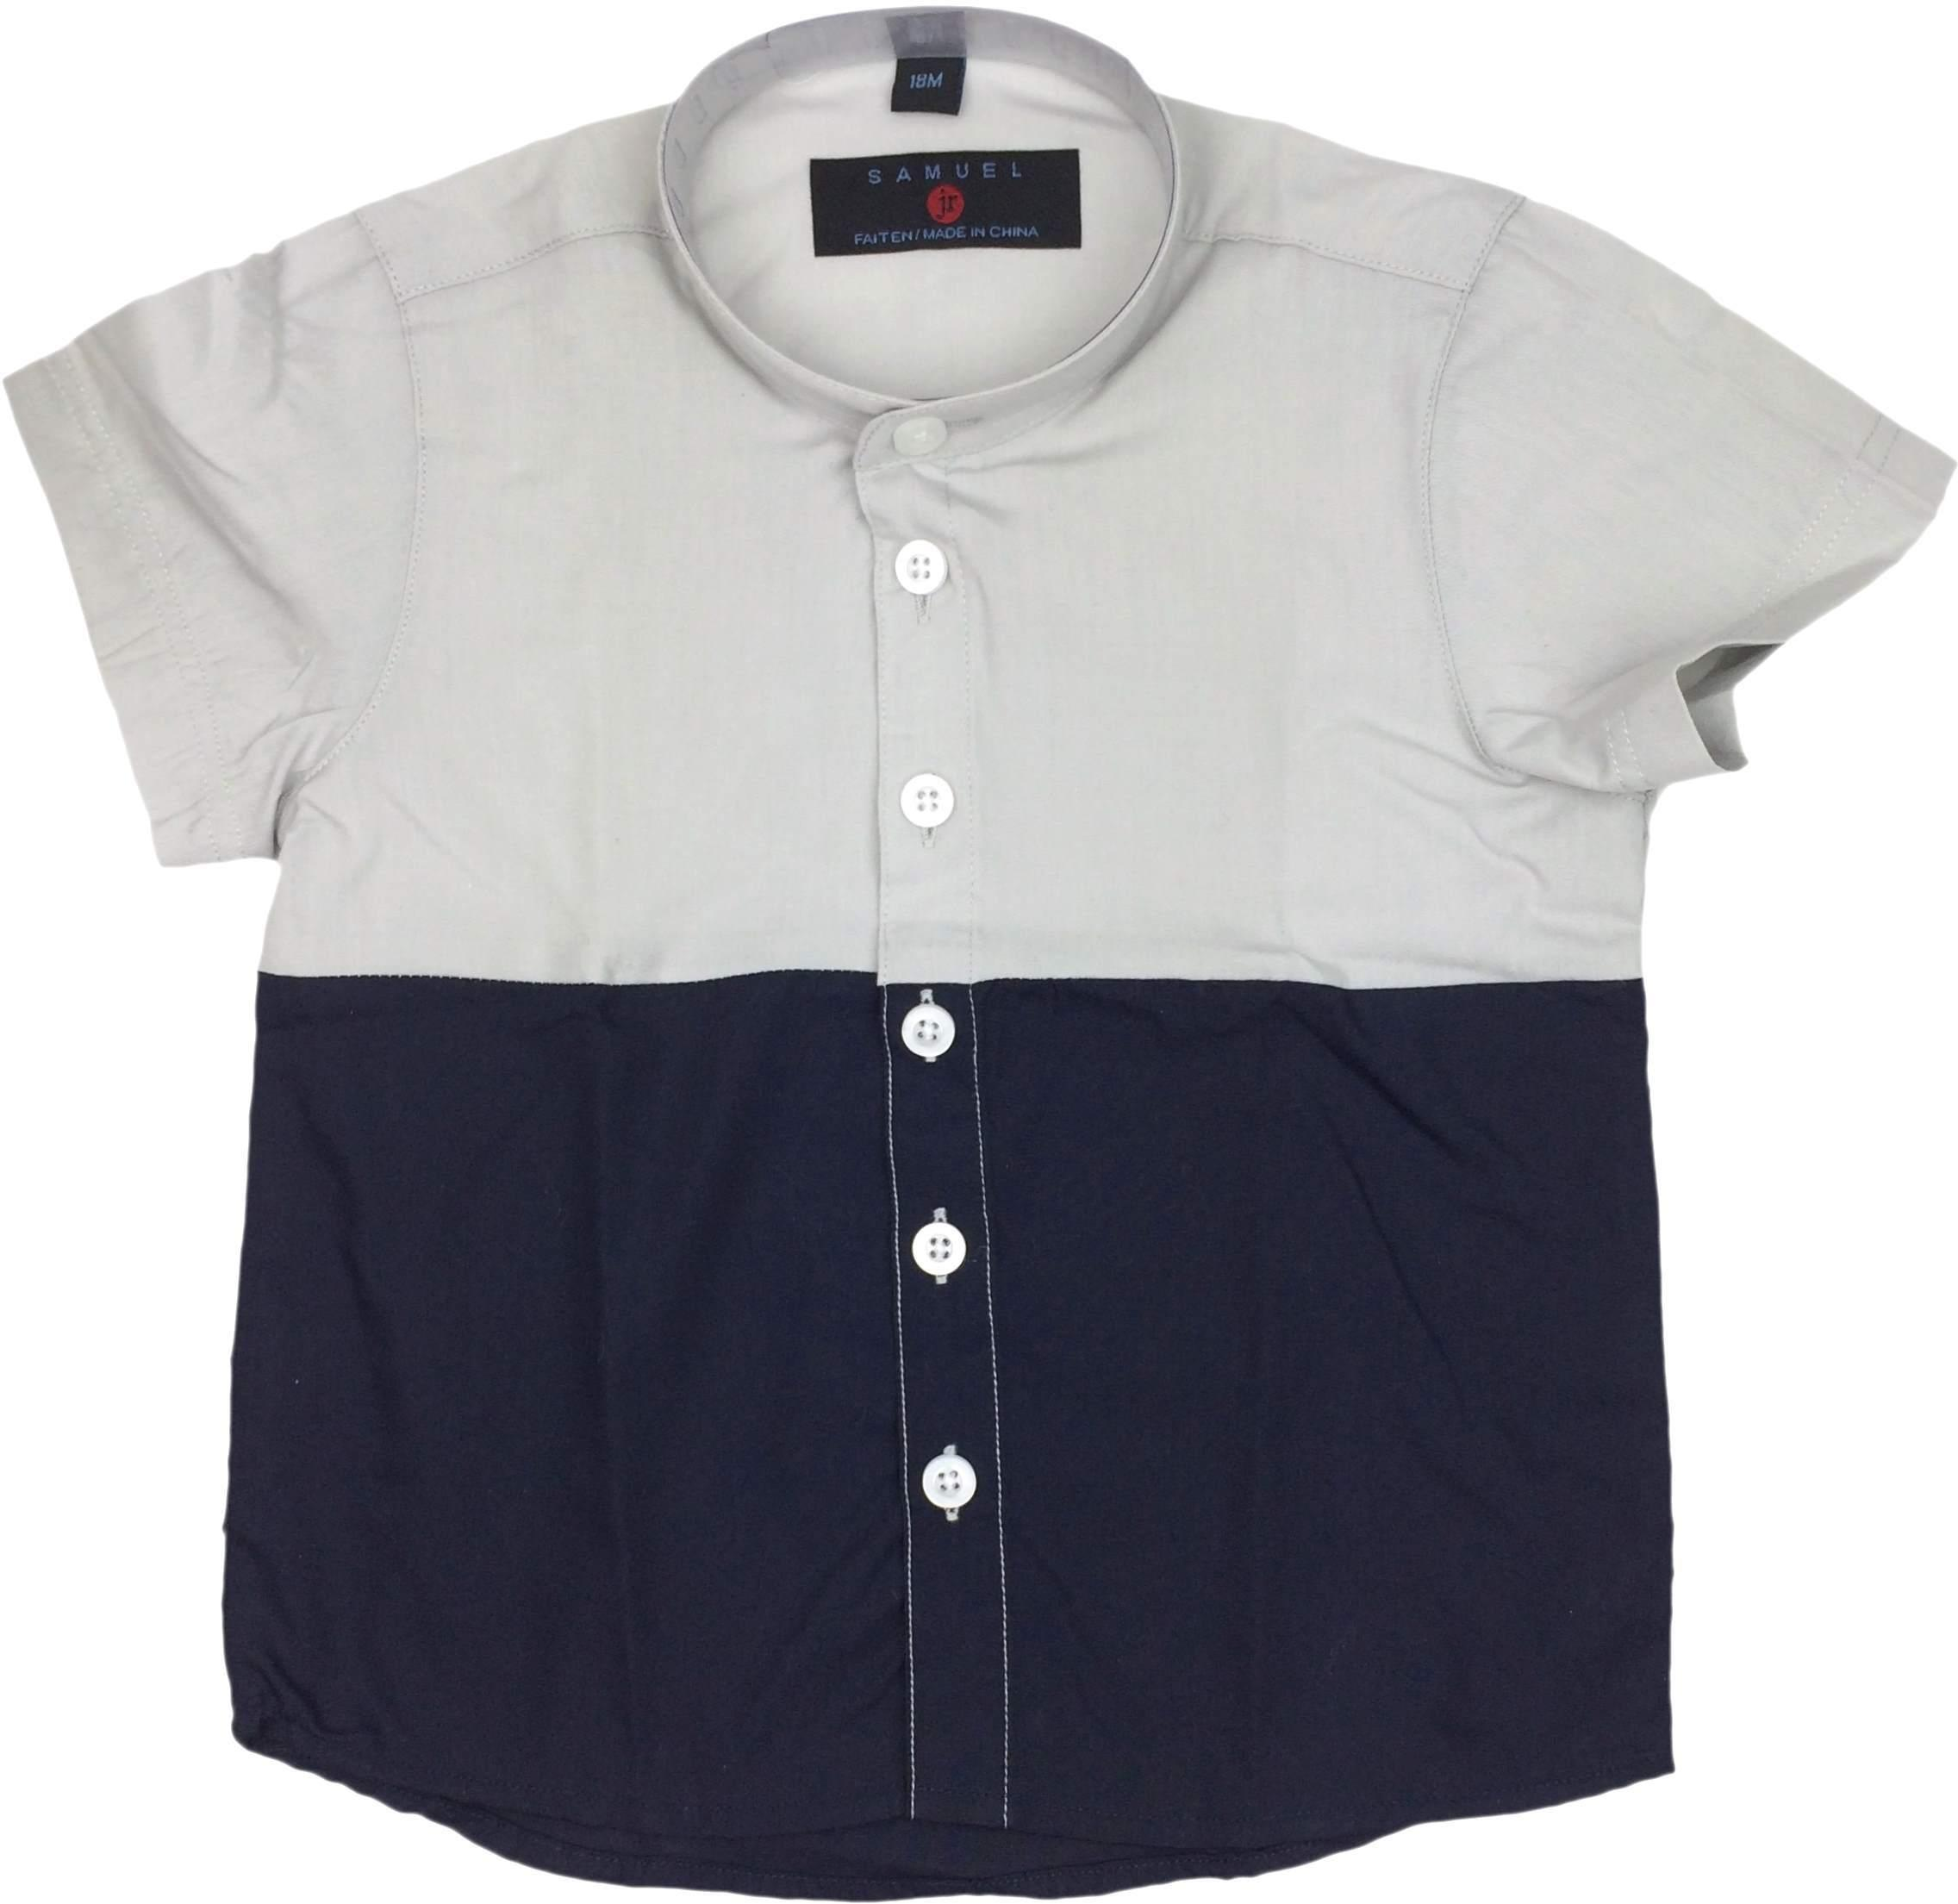 Find great deals on eBay for boys white shirt mandarin collar. Shop with confidence.